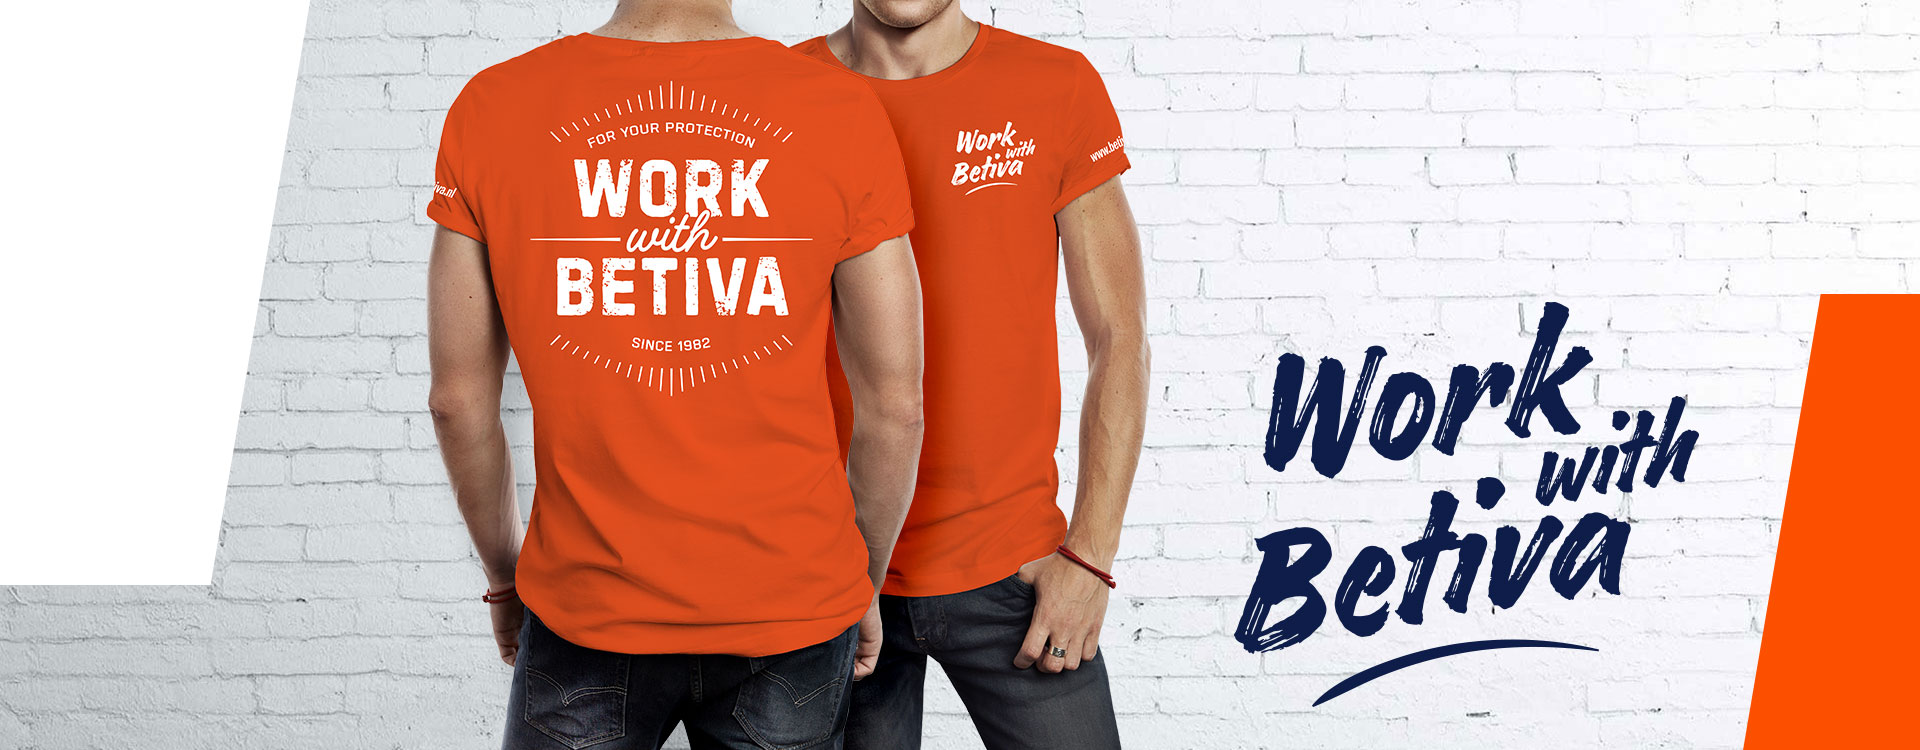 Work with Betiva T-shirt